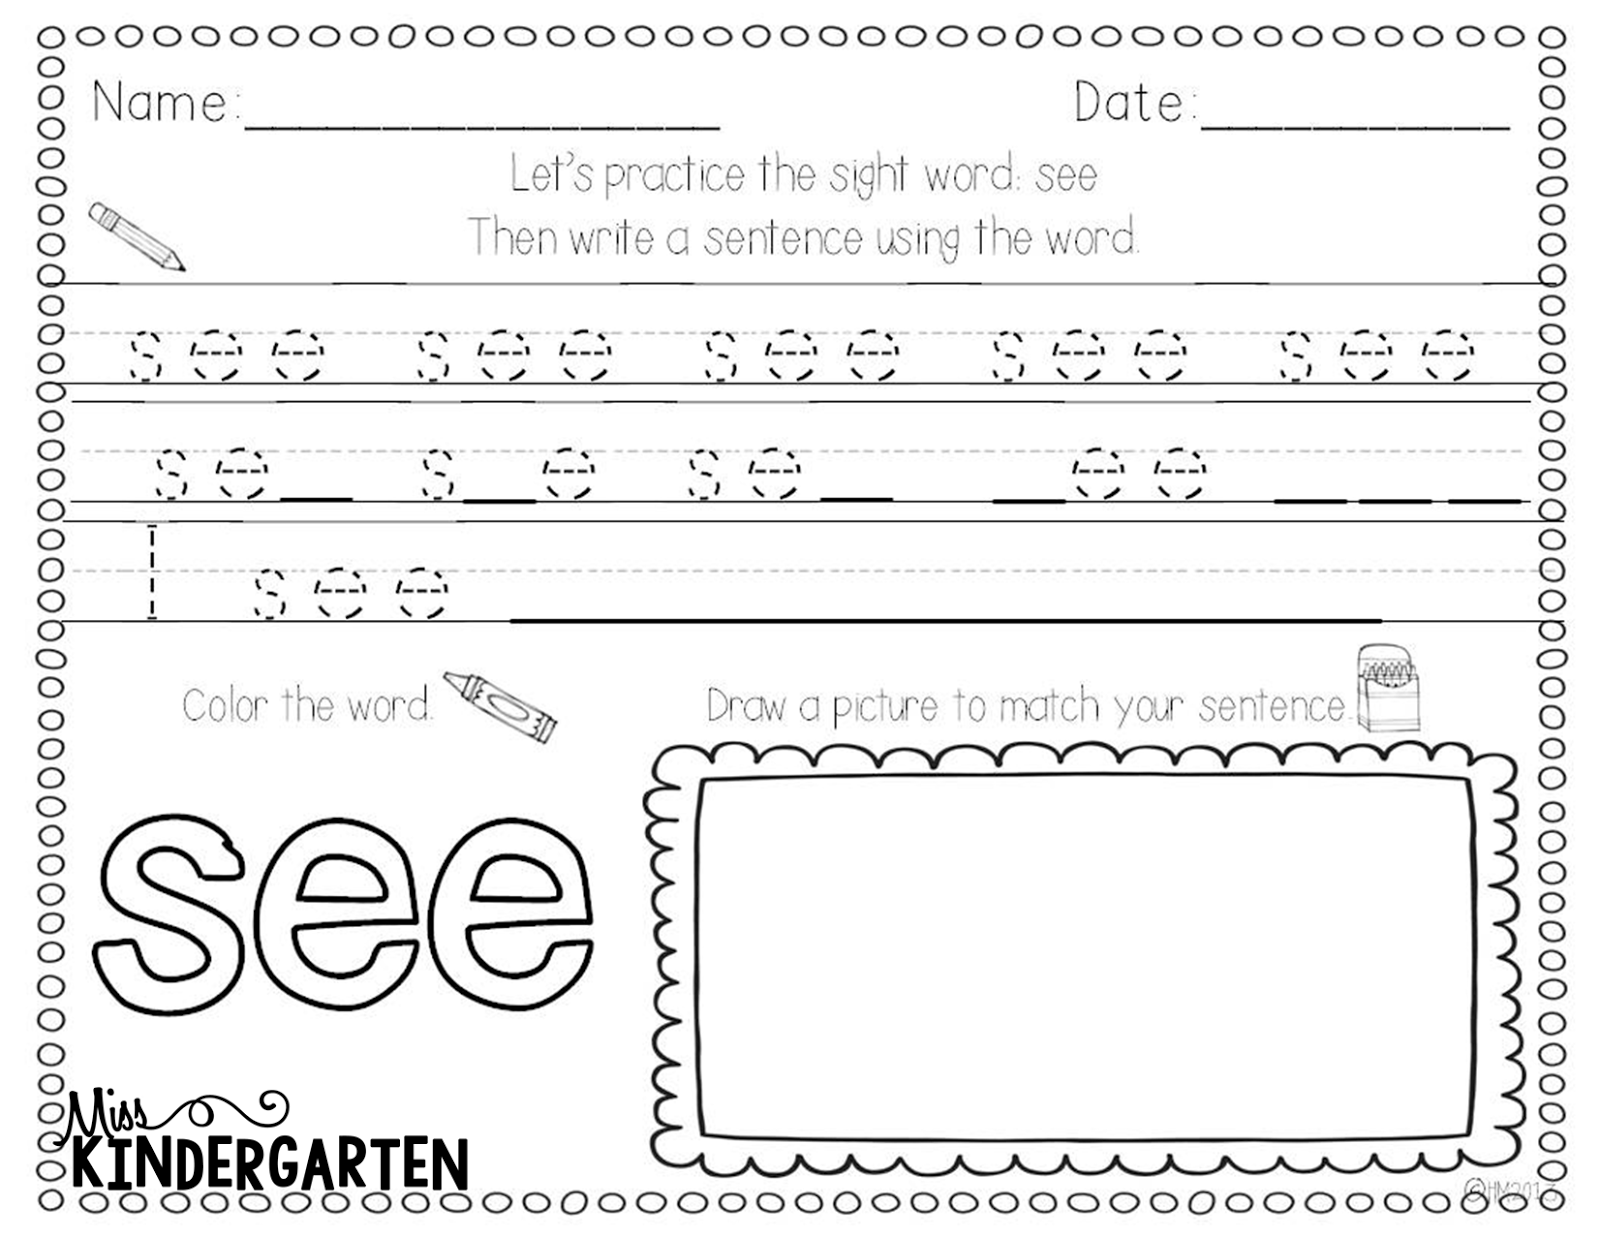 14 Best Images Of Practice Writing Words Worksheets